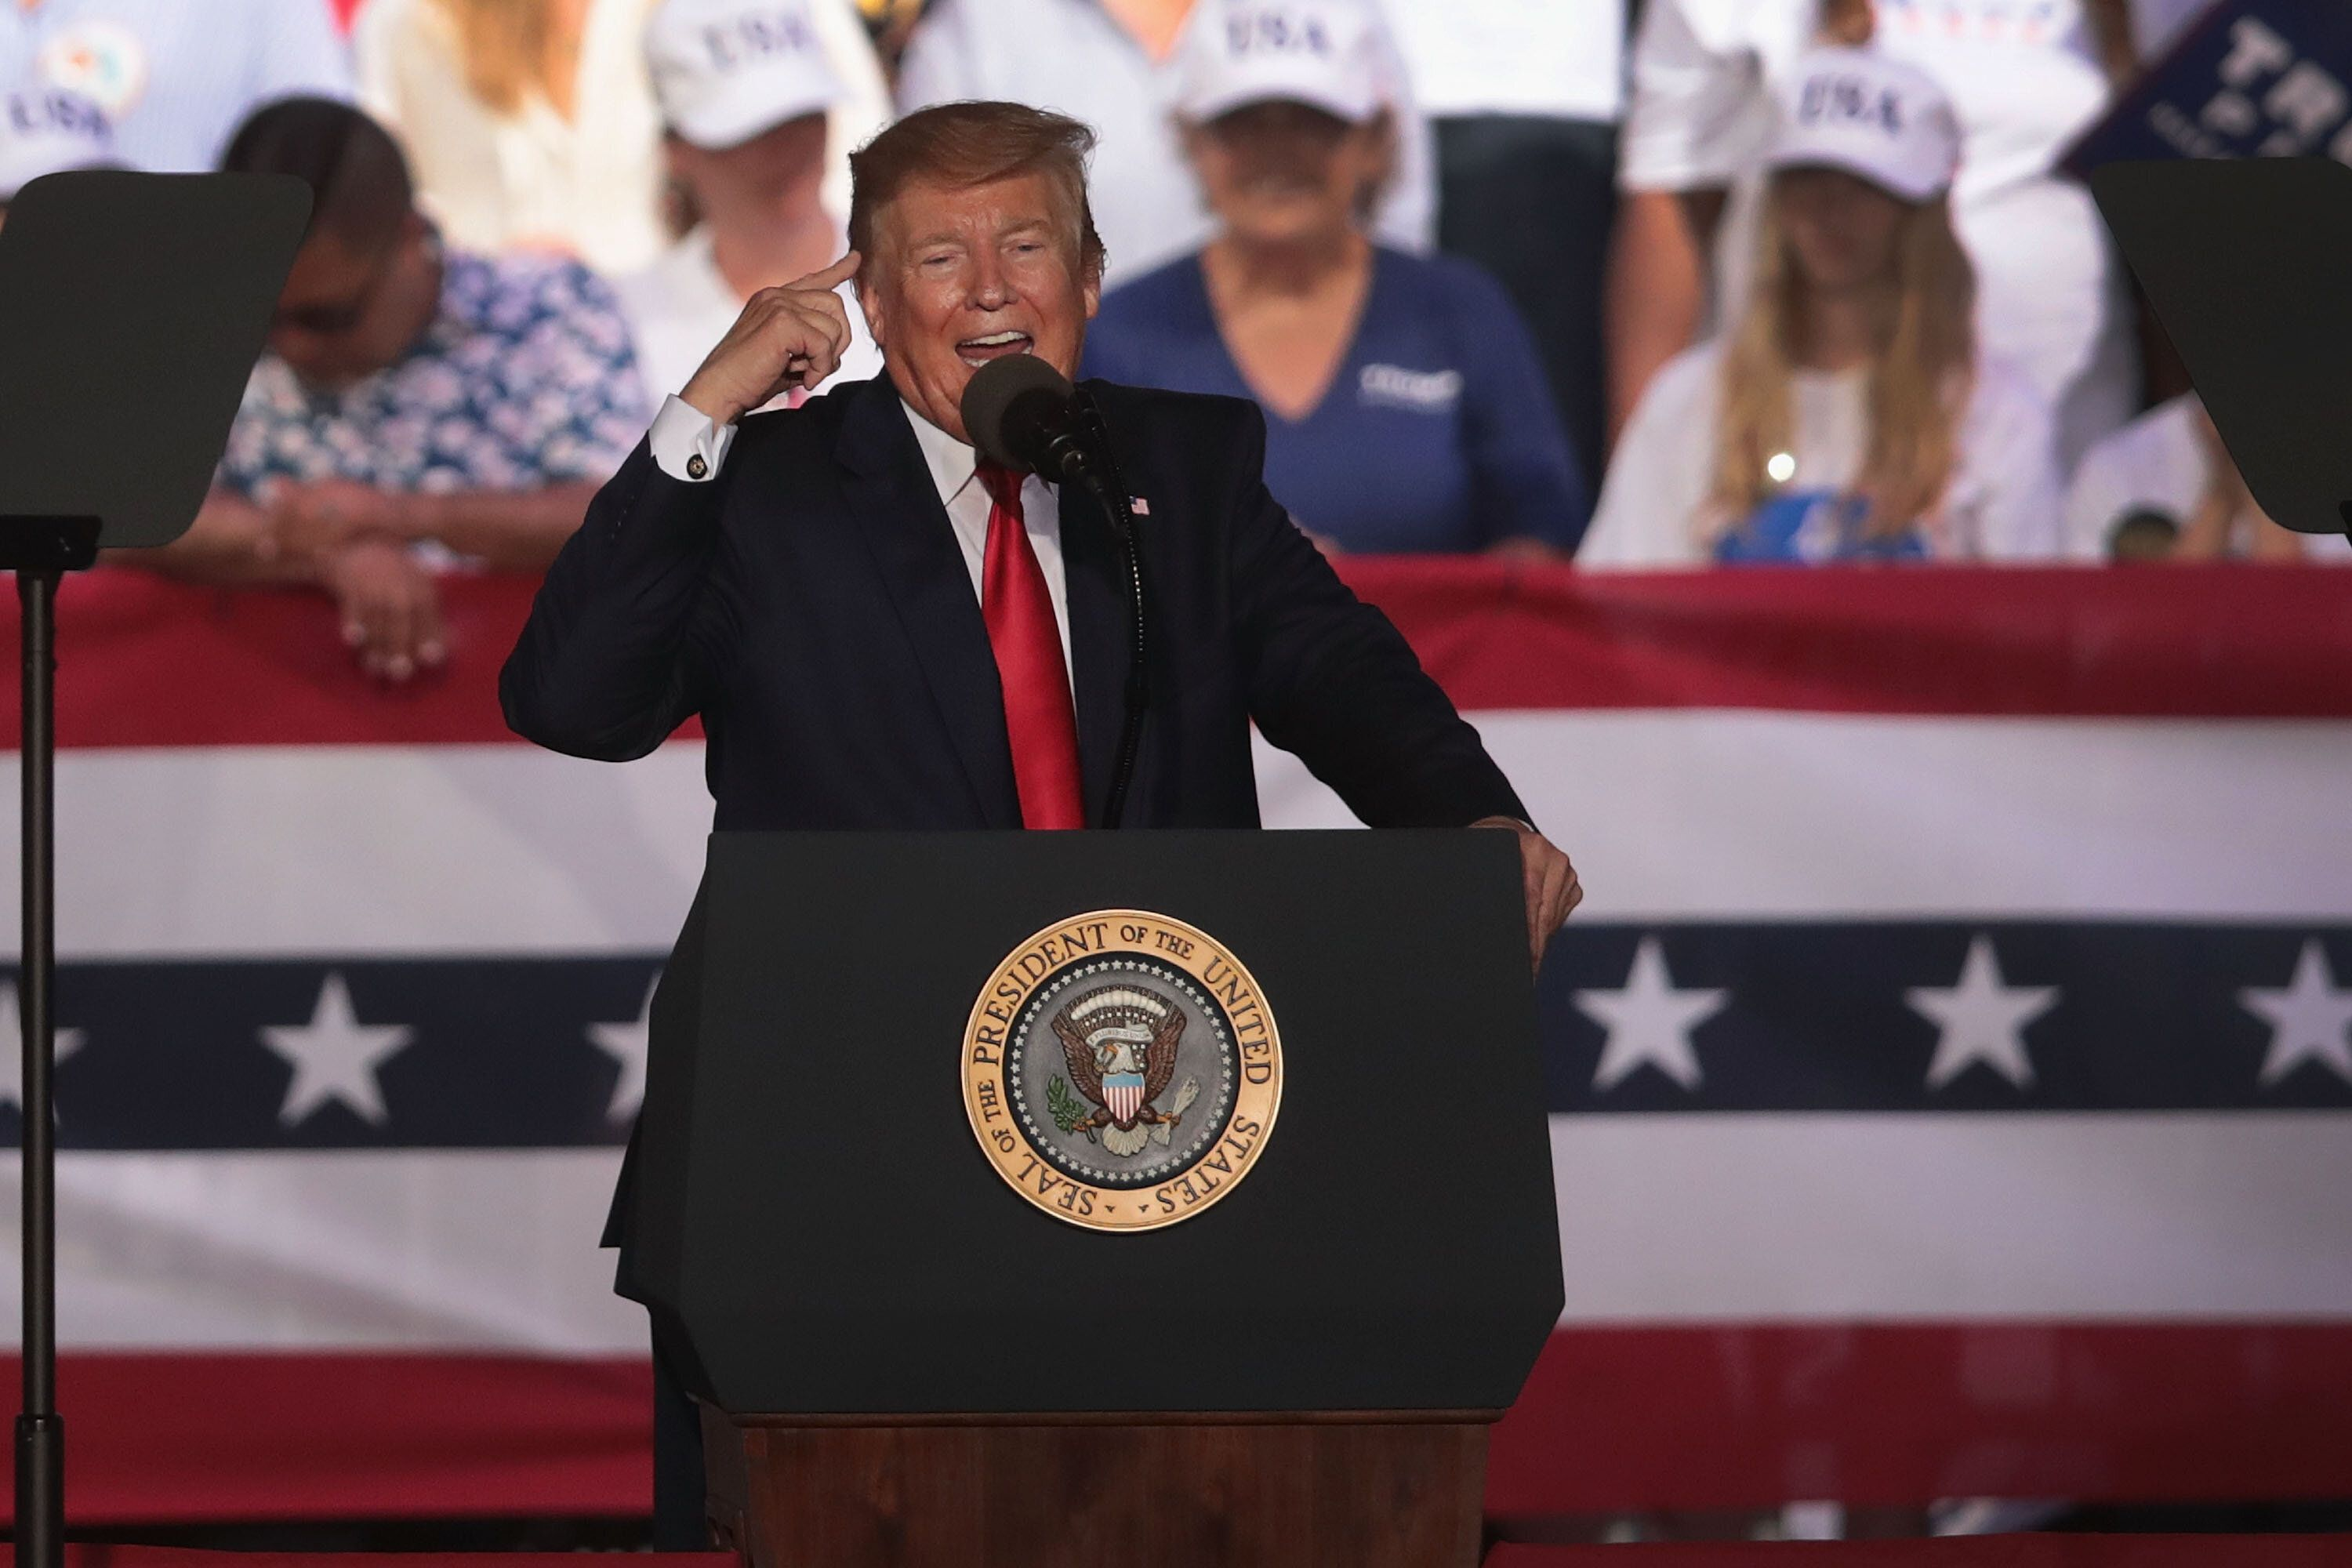 PANAMA CITY BEACH, FLORIDA - MAY 08: U.S. President Donald Trump speaks during a rally at the Aaron Bessant Amphitheater on May 8, 2019 in Panama City Beach, Florida. In his continuing battle with Congress over the release of Robert Mueller's unredacted report, today President Trump asserted executive privilege to block its release from public view. (Photo by Scott Olson/Getty Images)